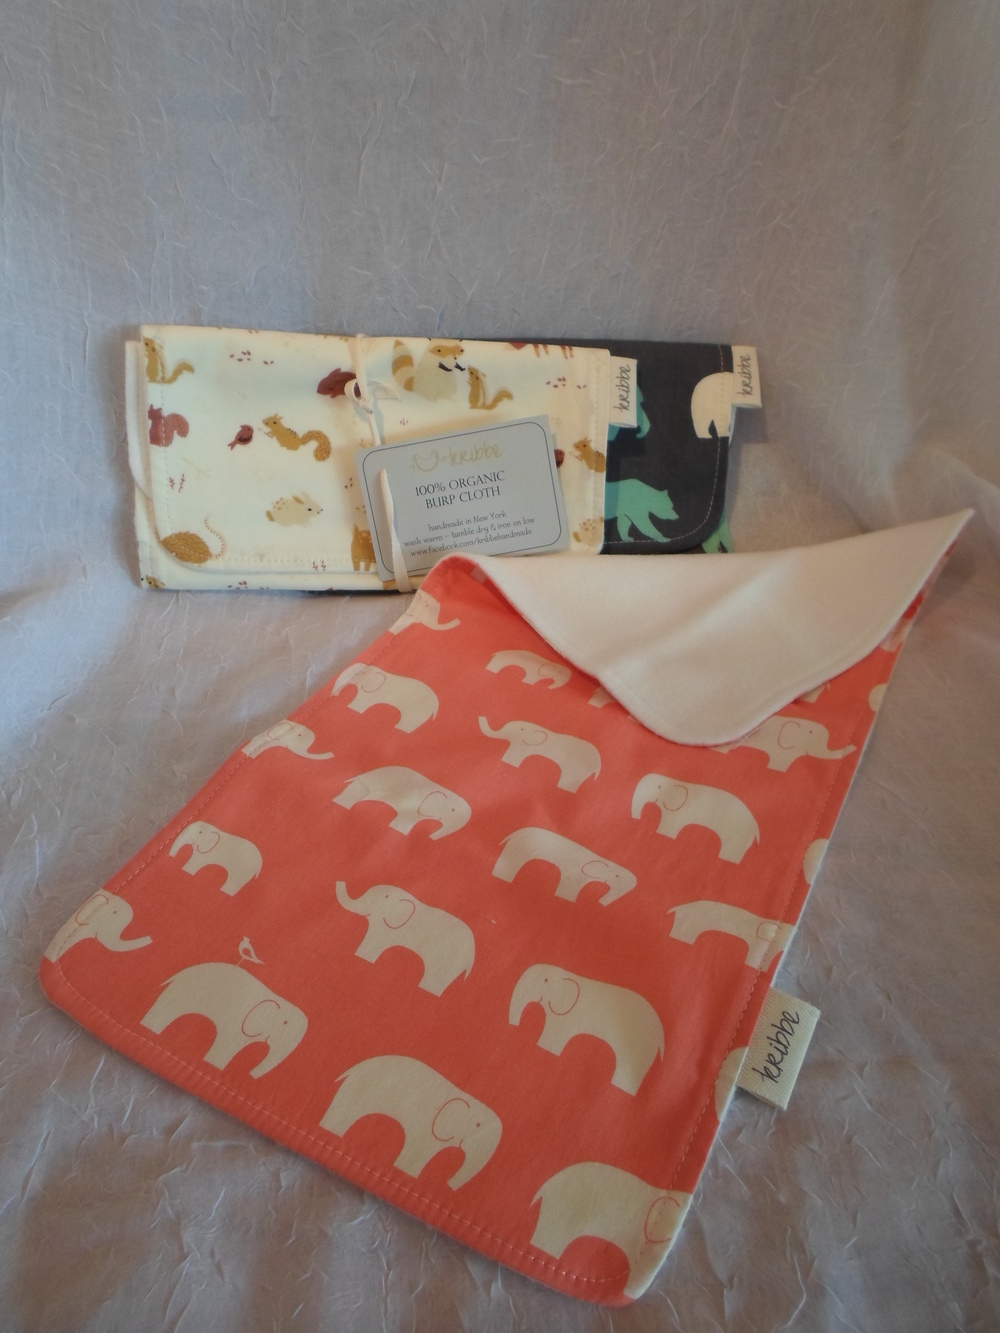 Kribbe Organic Burp Cloth Set of 3 Locally Handmade $39 Wants 1 - PURCHASED